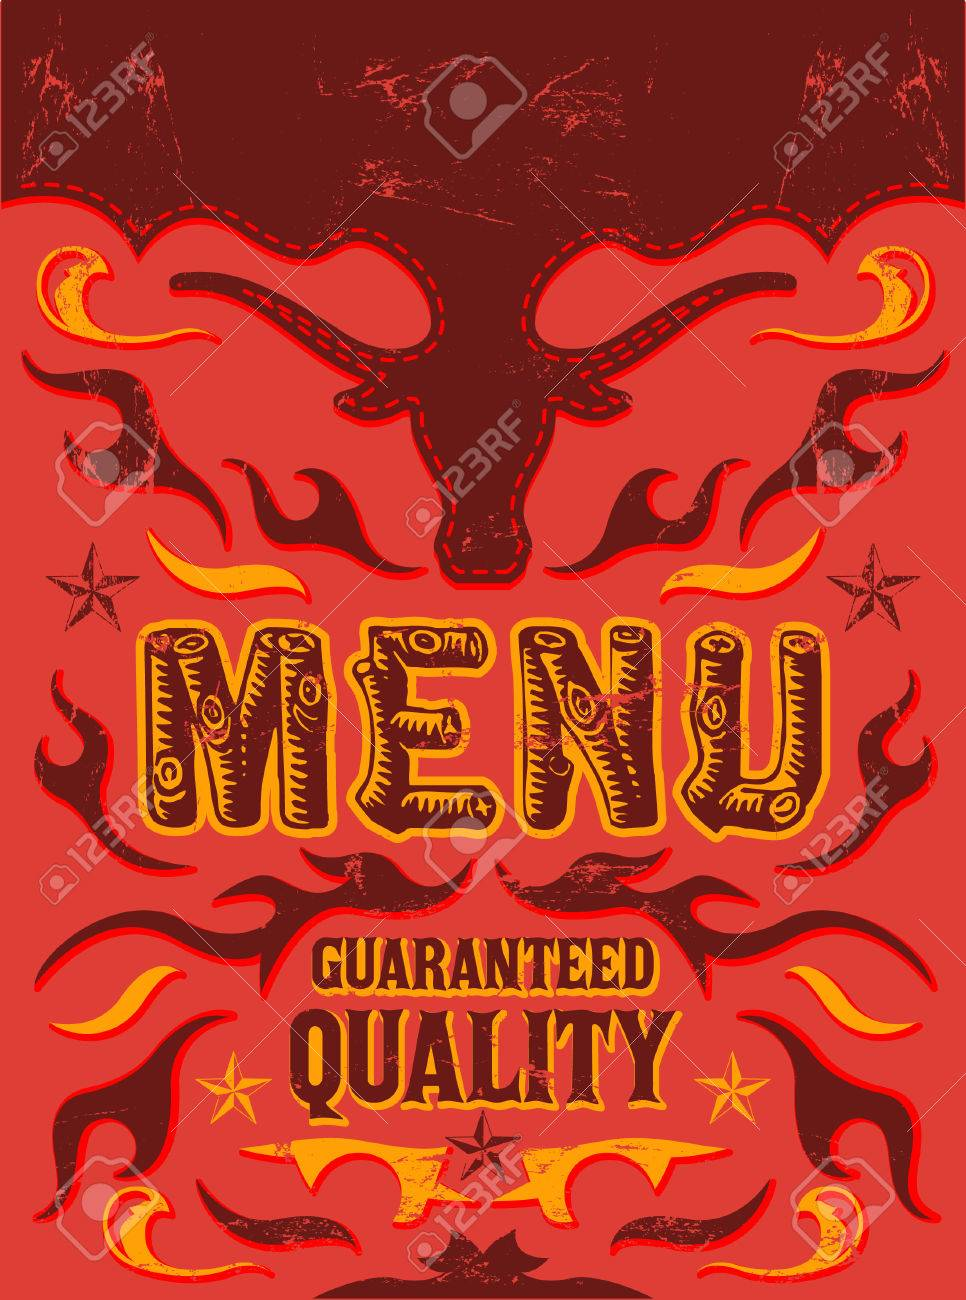 Vector Grill Steak Restaurant Menu Design Spicy Food Royalty Free Cliparts Vectors And Stock Illustration Image 27325121